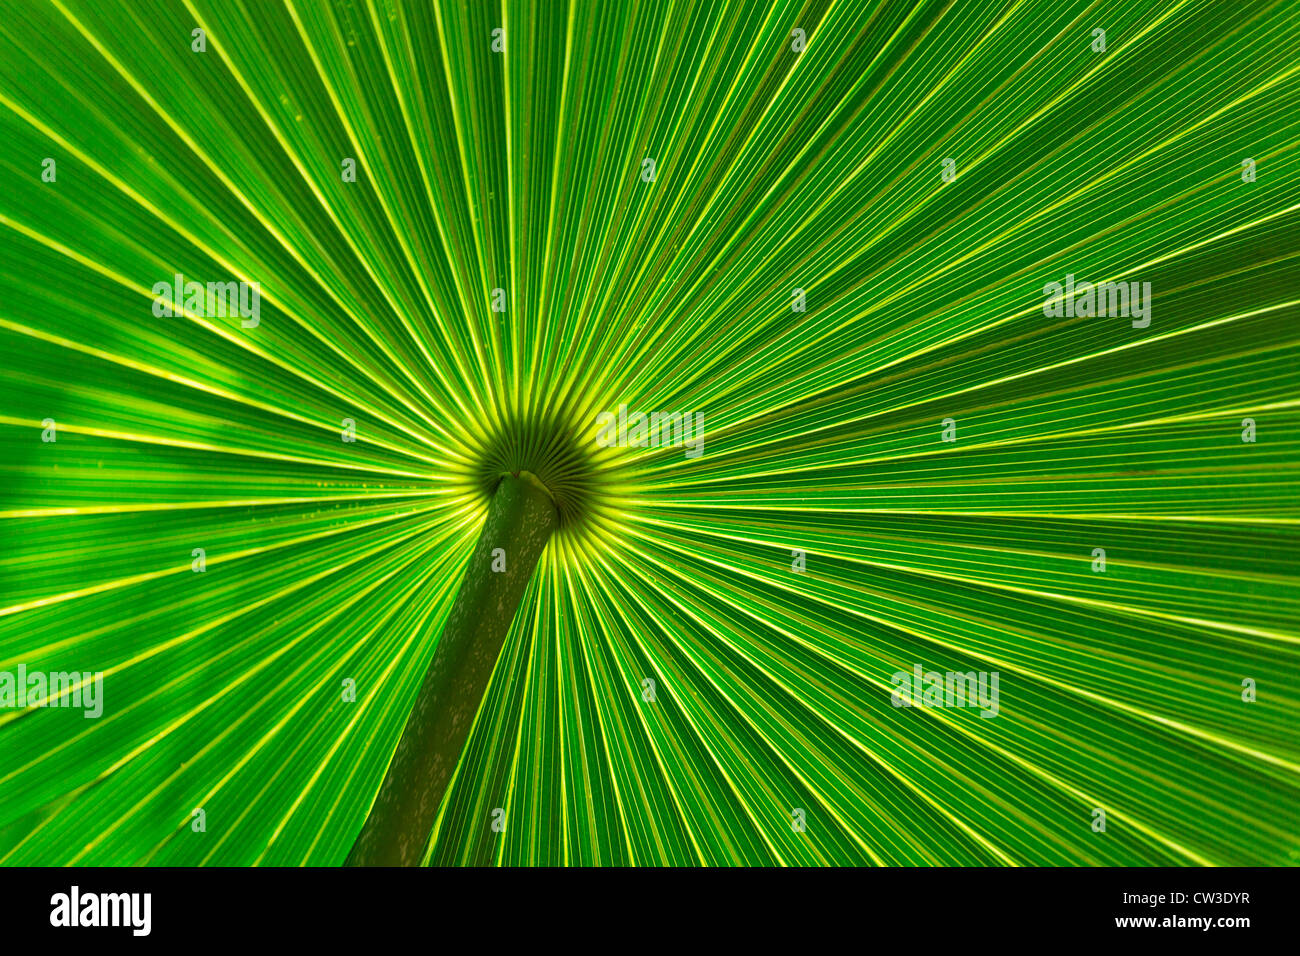 close-up of saw palmetto leaf - Stock Image